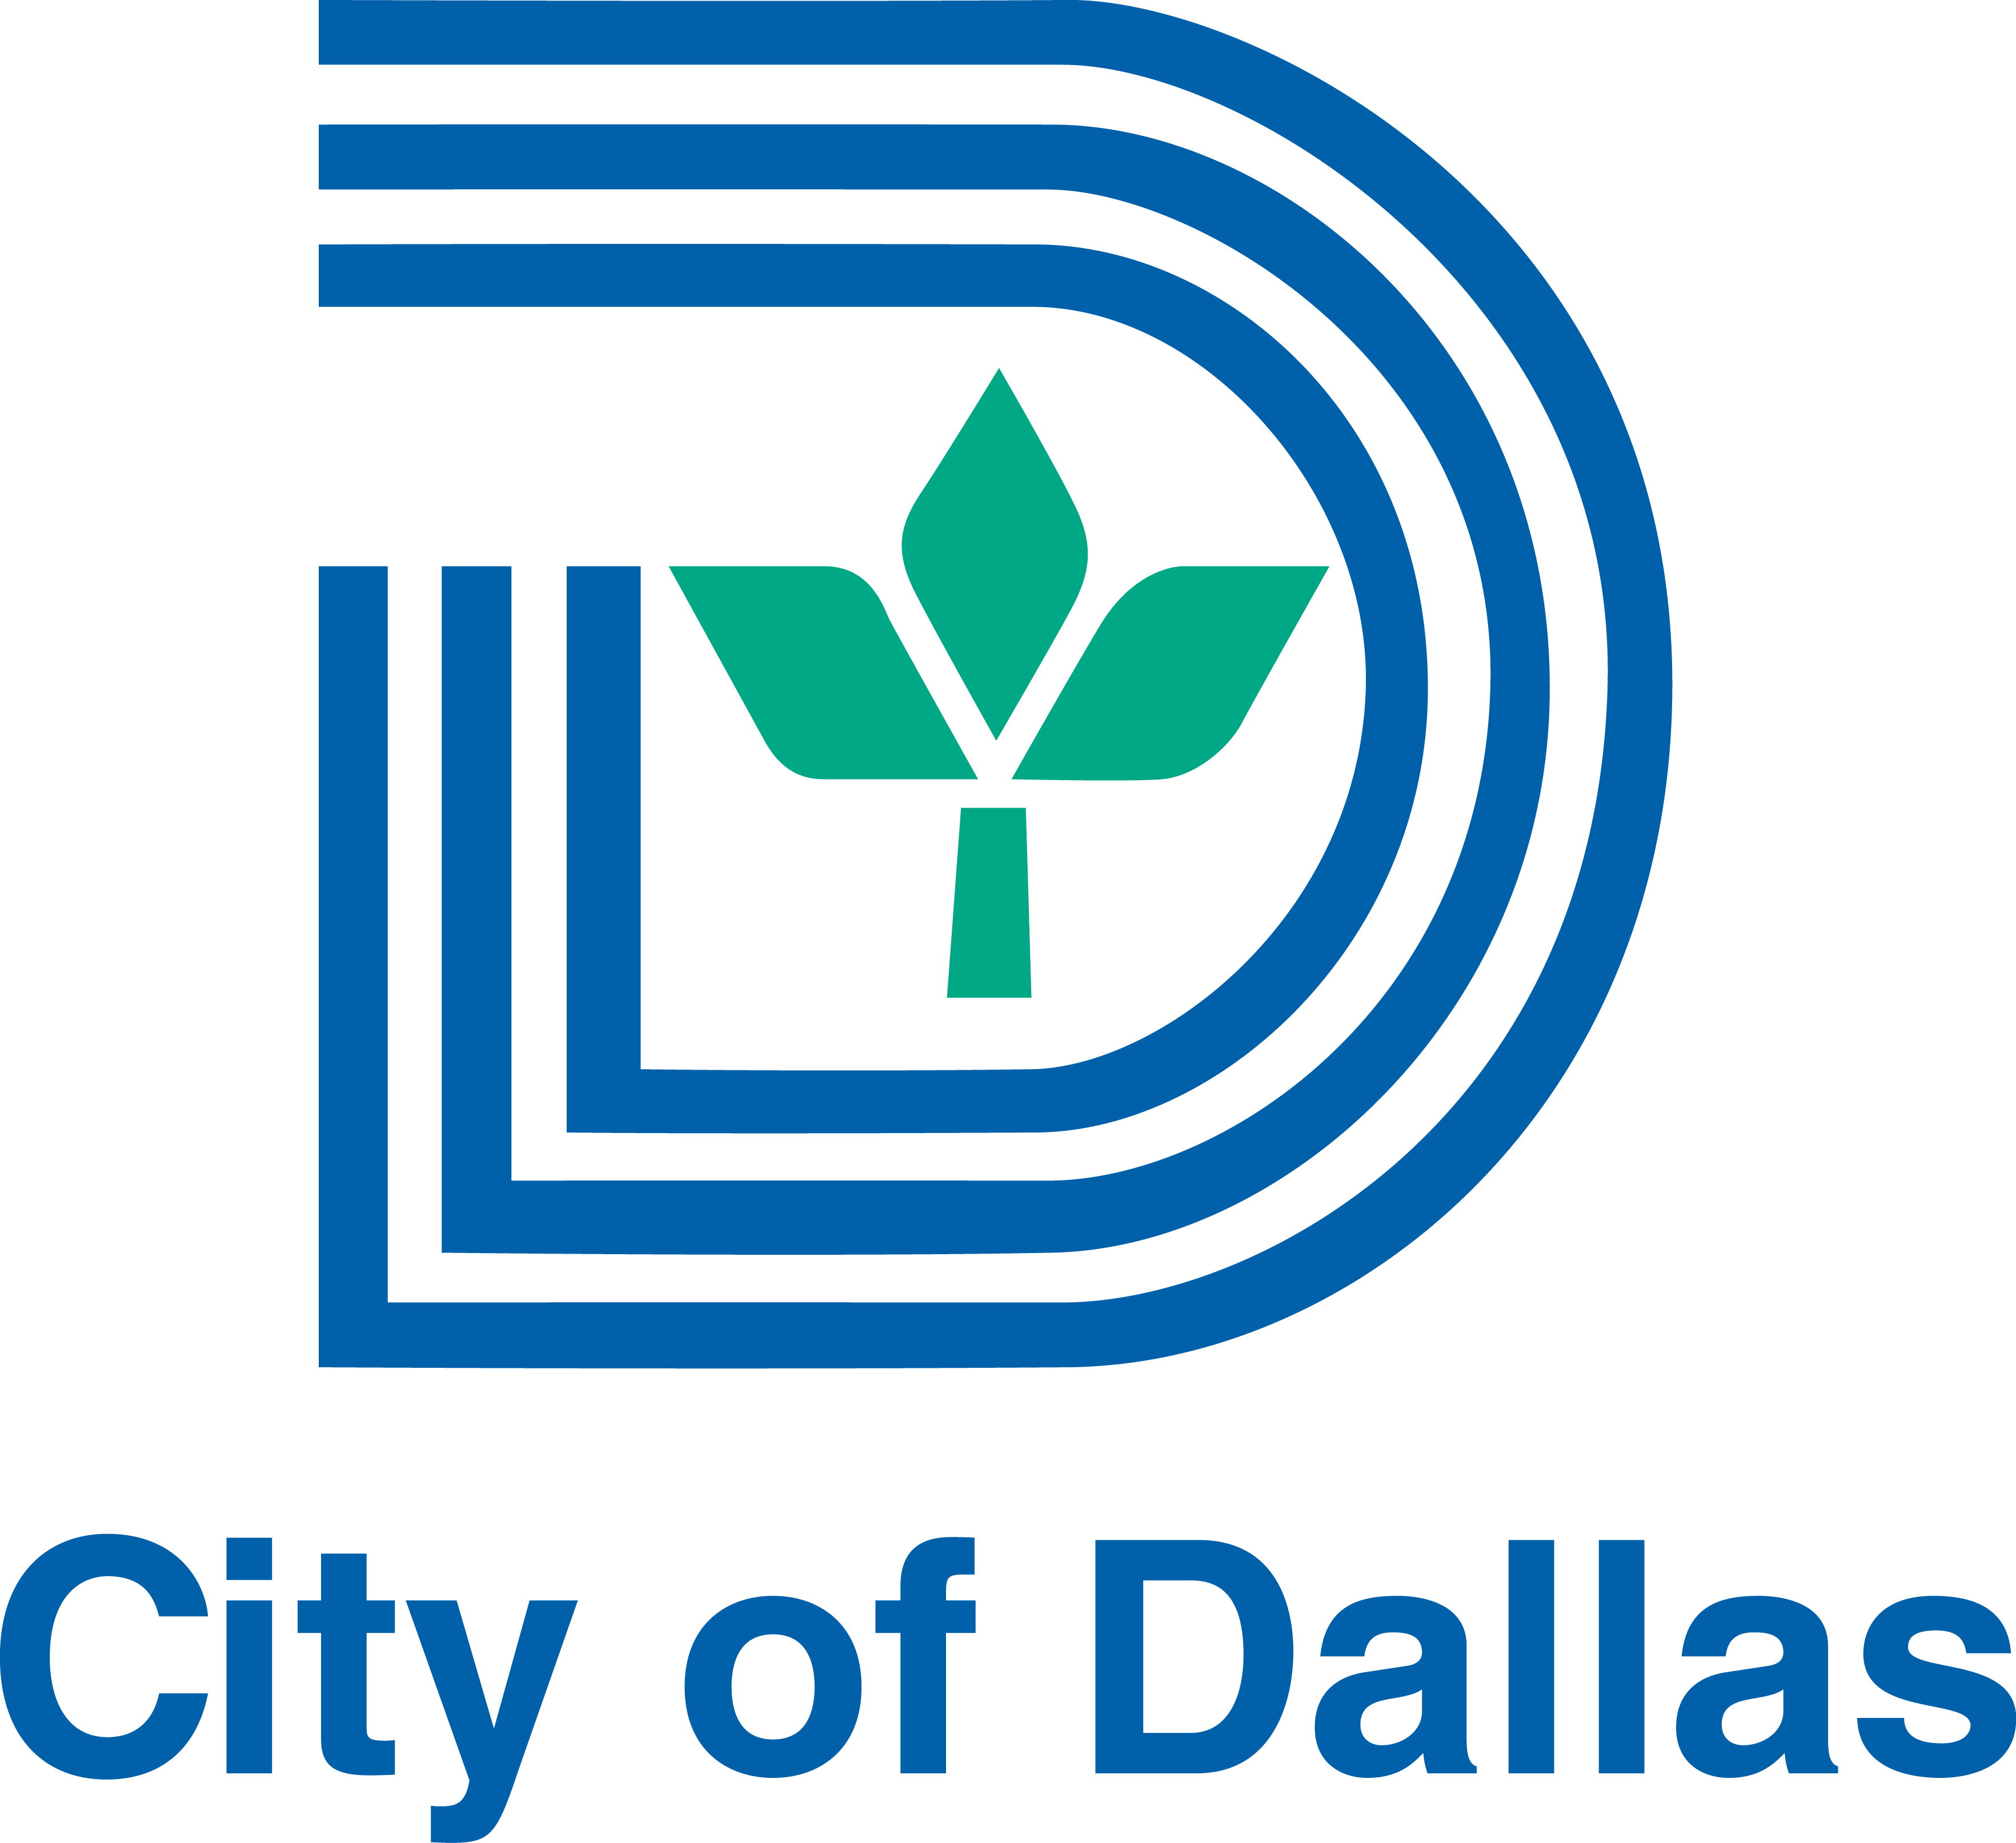 City-of-Dallas.png